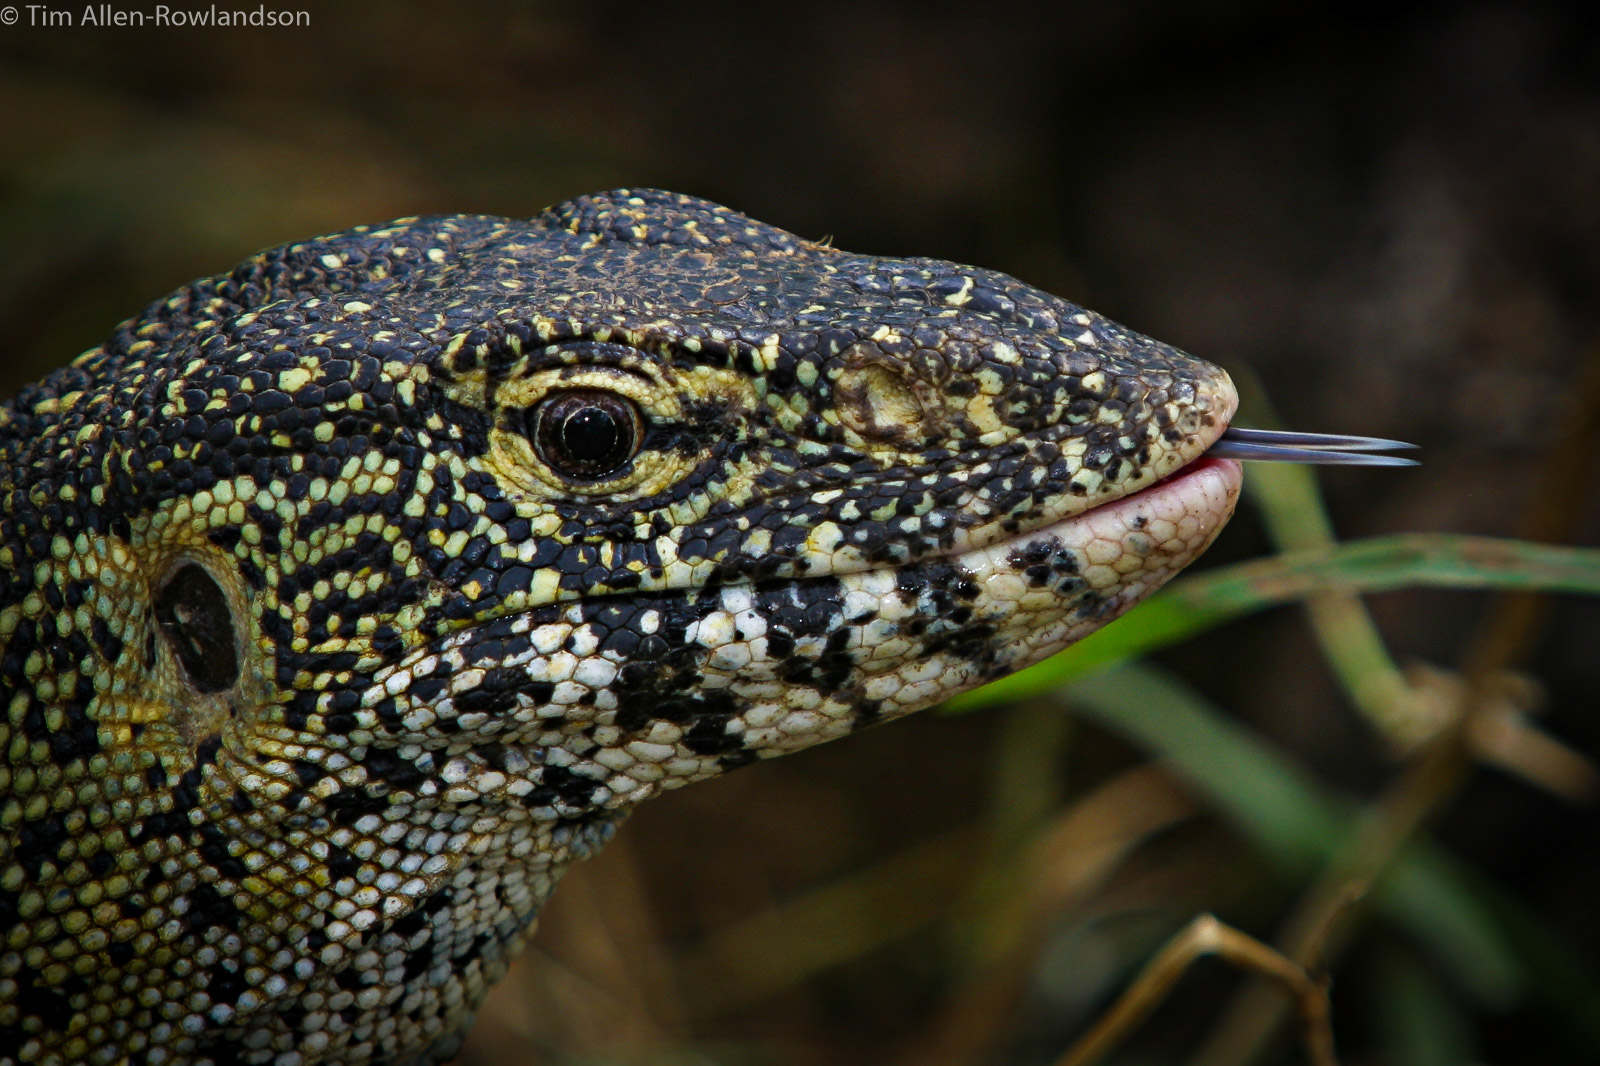 Nile monitor testing the environment with its forked tongue, Tsavo